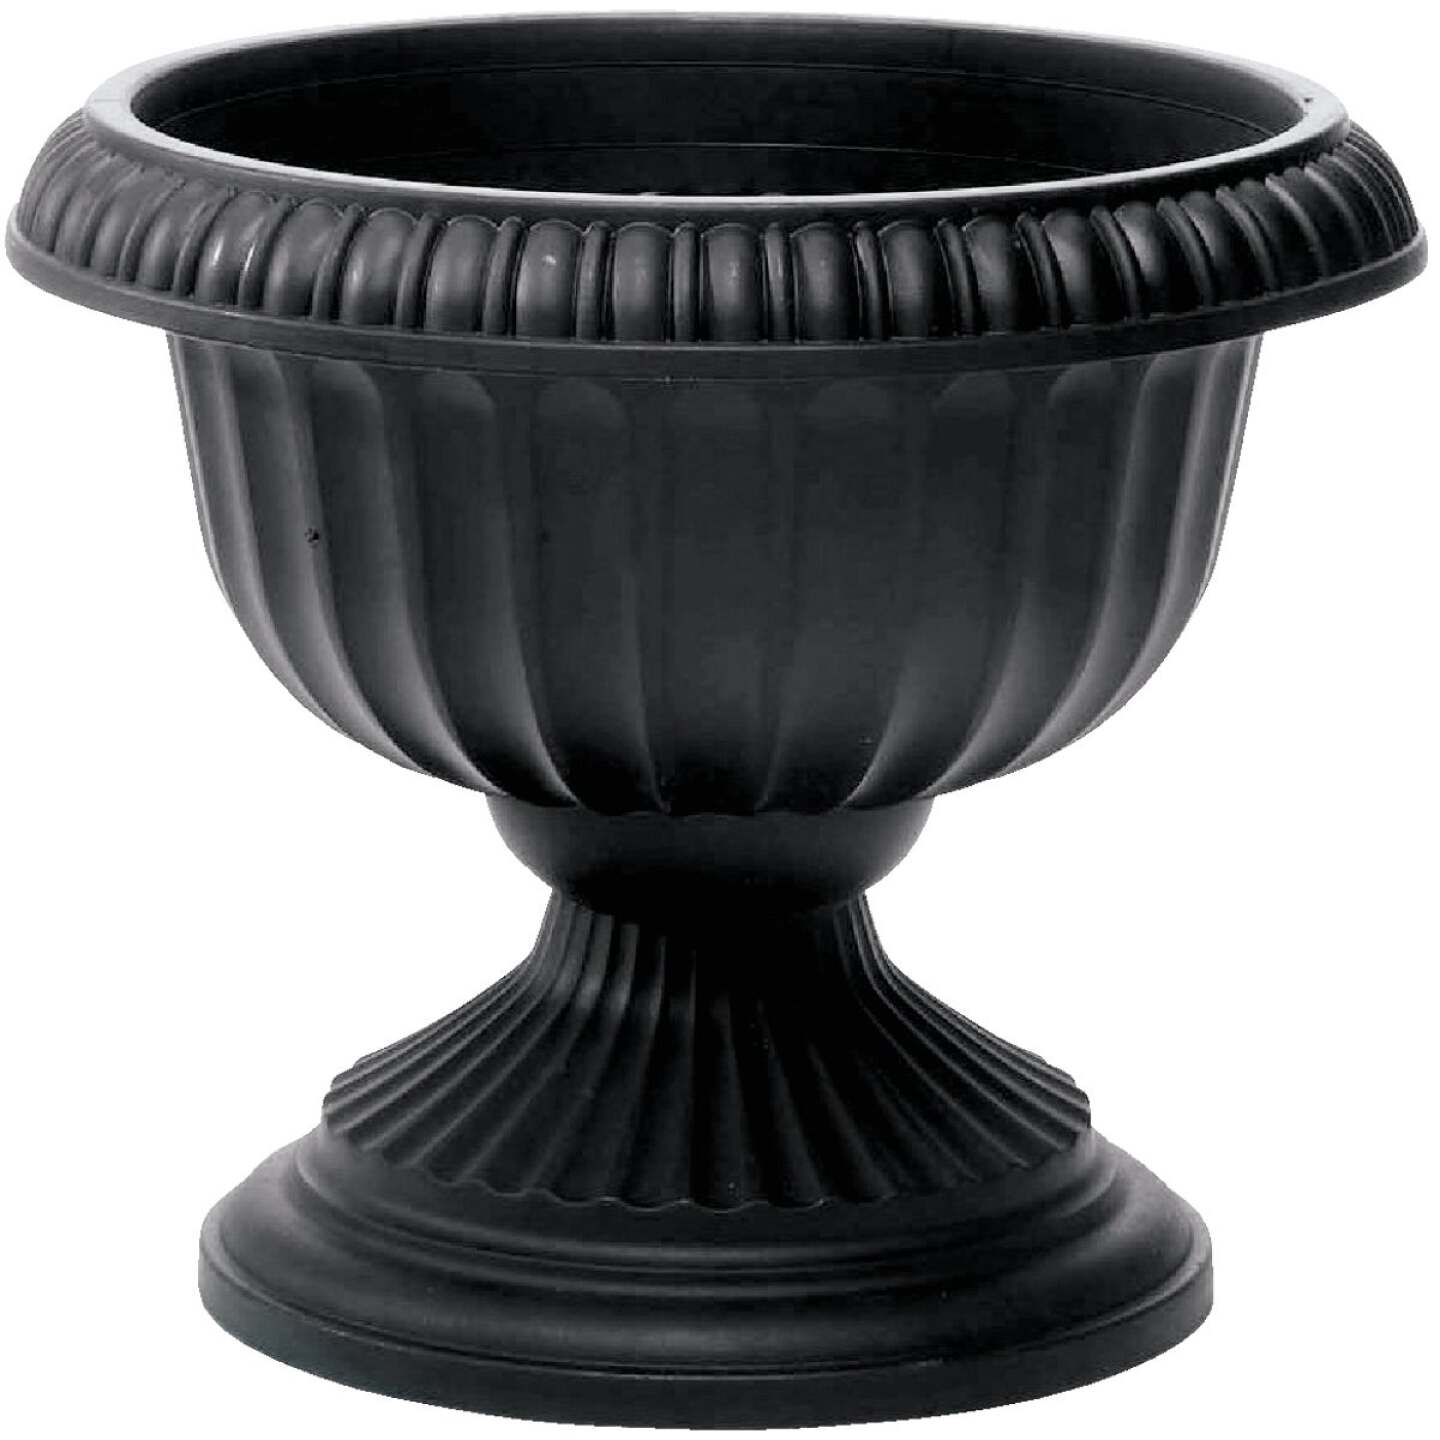 Novelty 18 In. W. x 14.5 In. H. x 18 In. L. Poly Black Urn Image 1